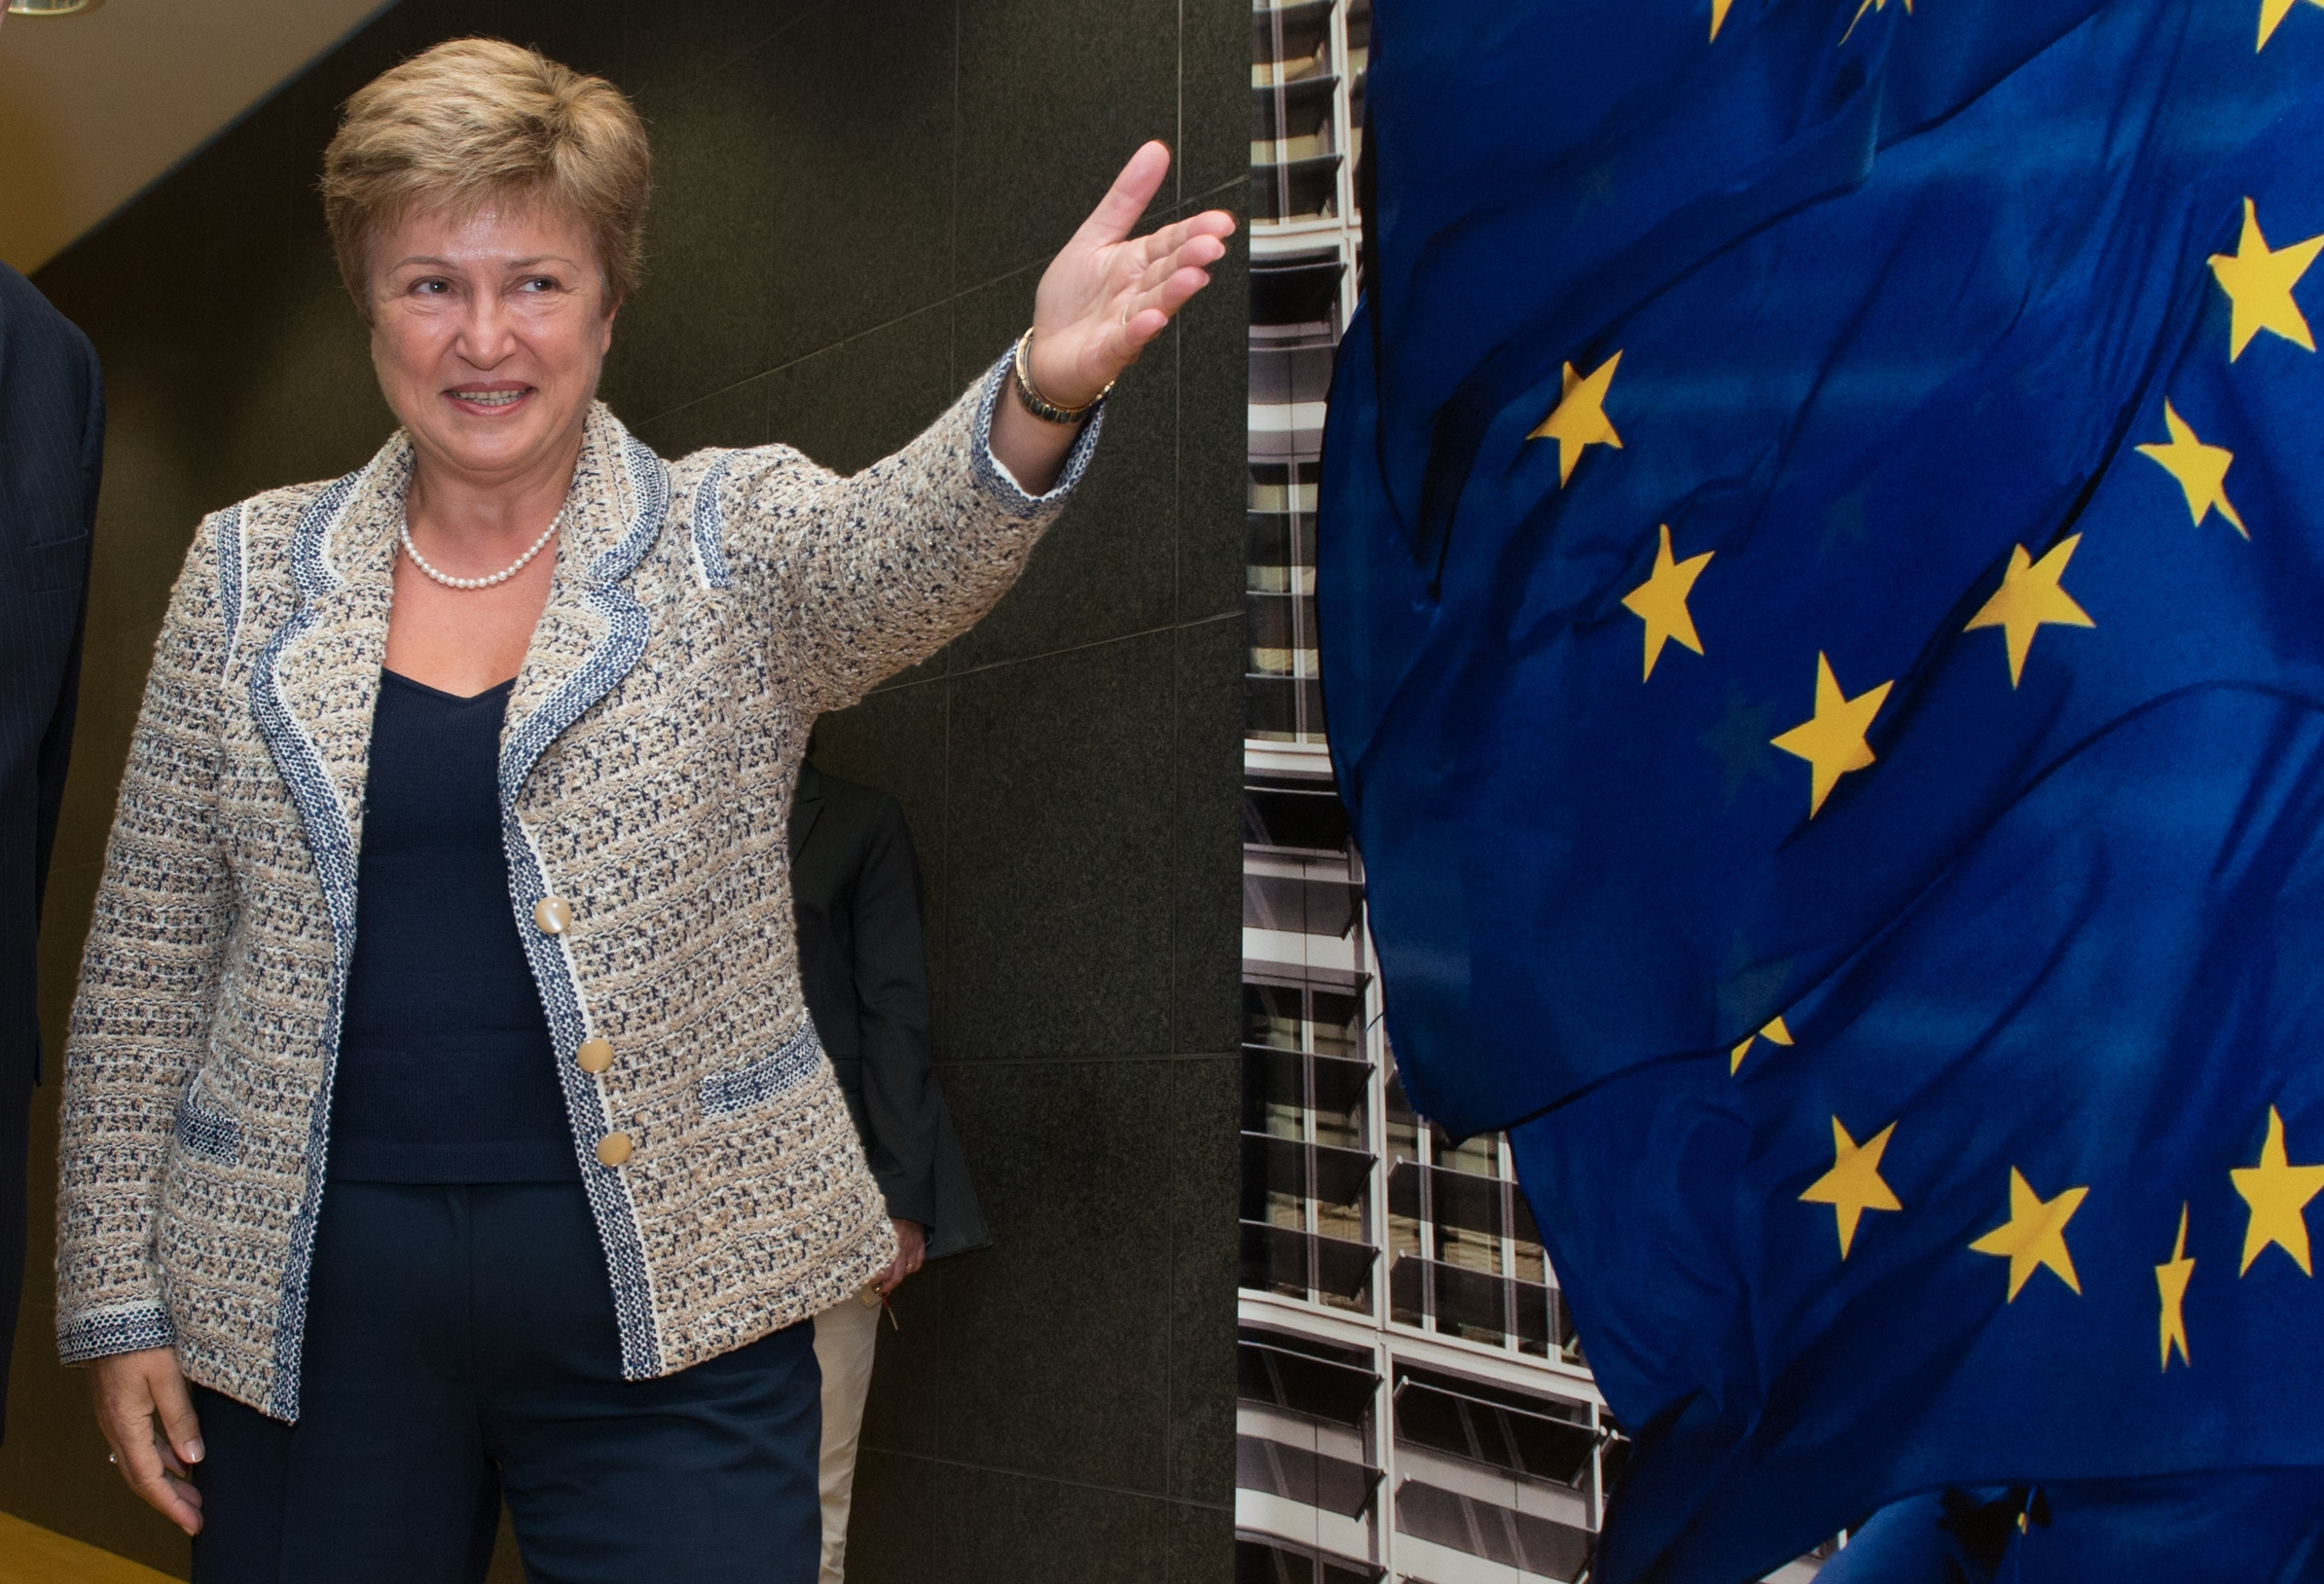 Georgieva: EU has approved financial aid to help Bulgaria cope with refugee situation